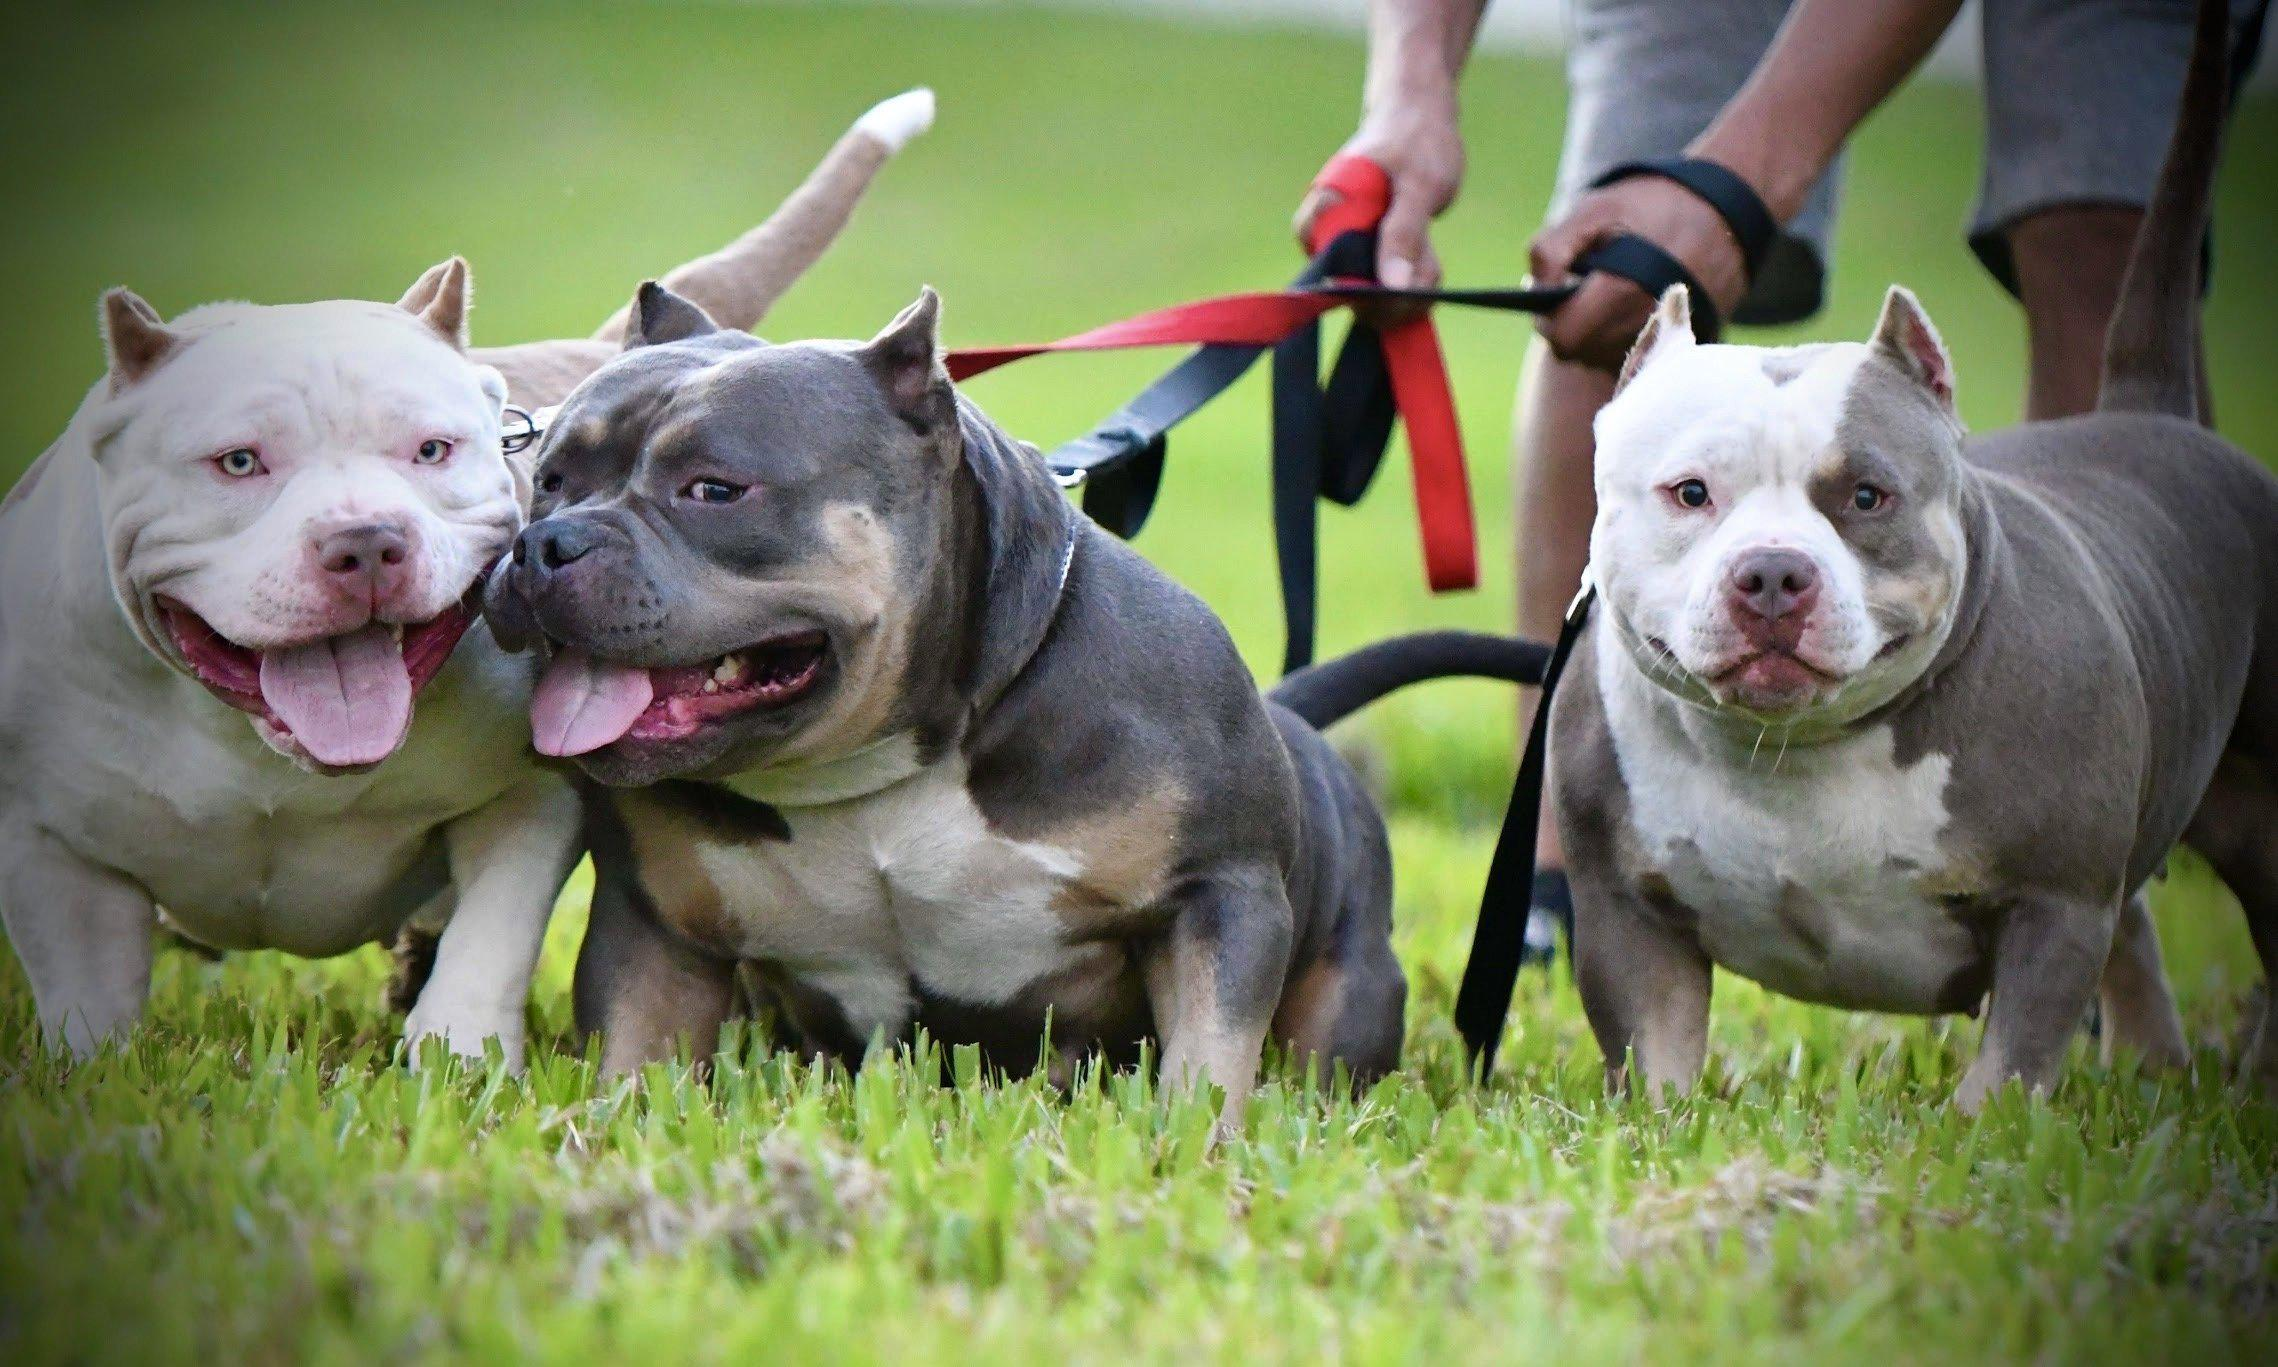 American Bully Breeders, American Bully Kennels, Pocket Bully Kennels, Pocket Bully Breeders, Pocket Bully Kennels, Best Pocket Bully Breeders, Best Pocket Bully Kennels, Top Pocket Bully Studs, Venomline, ABKC Champions, Pocket American Bully, Pocket Bully, Micro Bully, Extreme Bully, Exotic Bully, Puppies for Sale